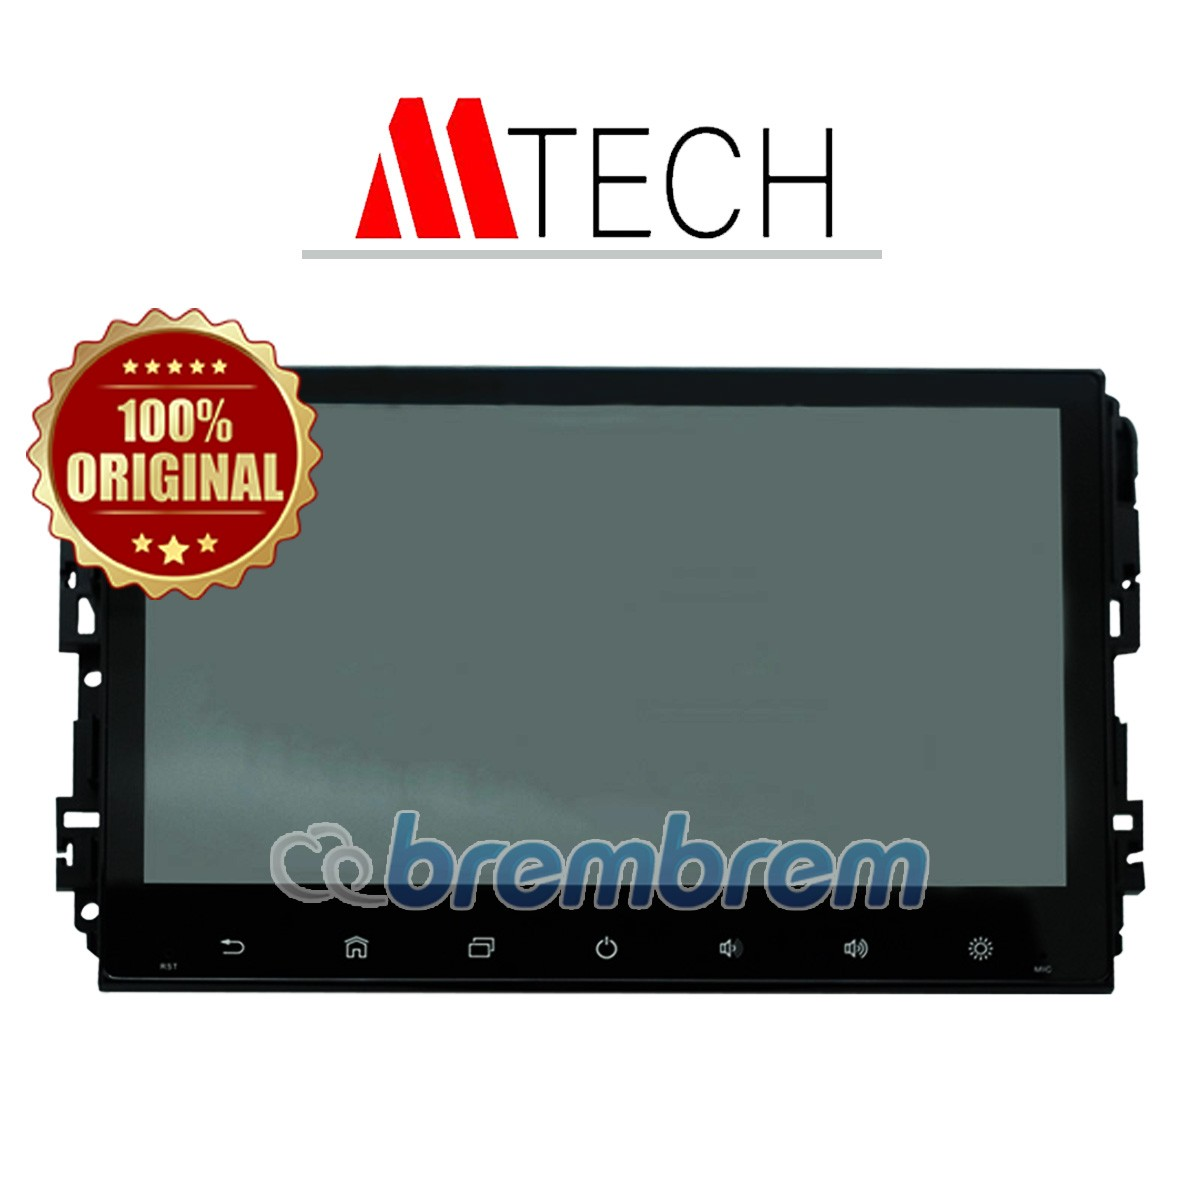 MTECH ANDROID BLACK - HEAD UNIT OEM (MITSUBISHI XPANDER)